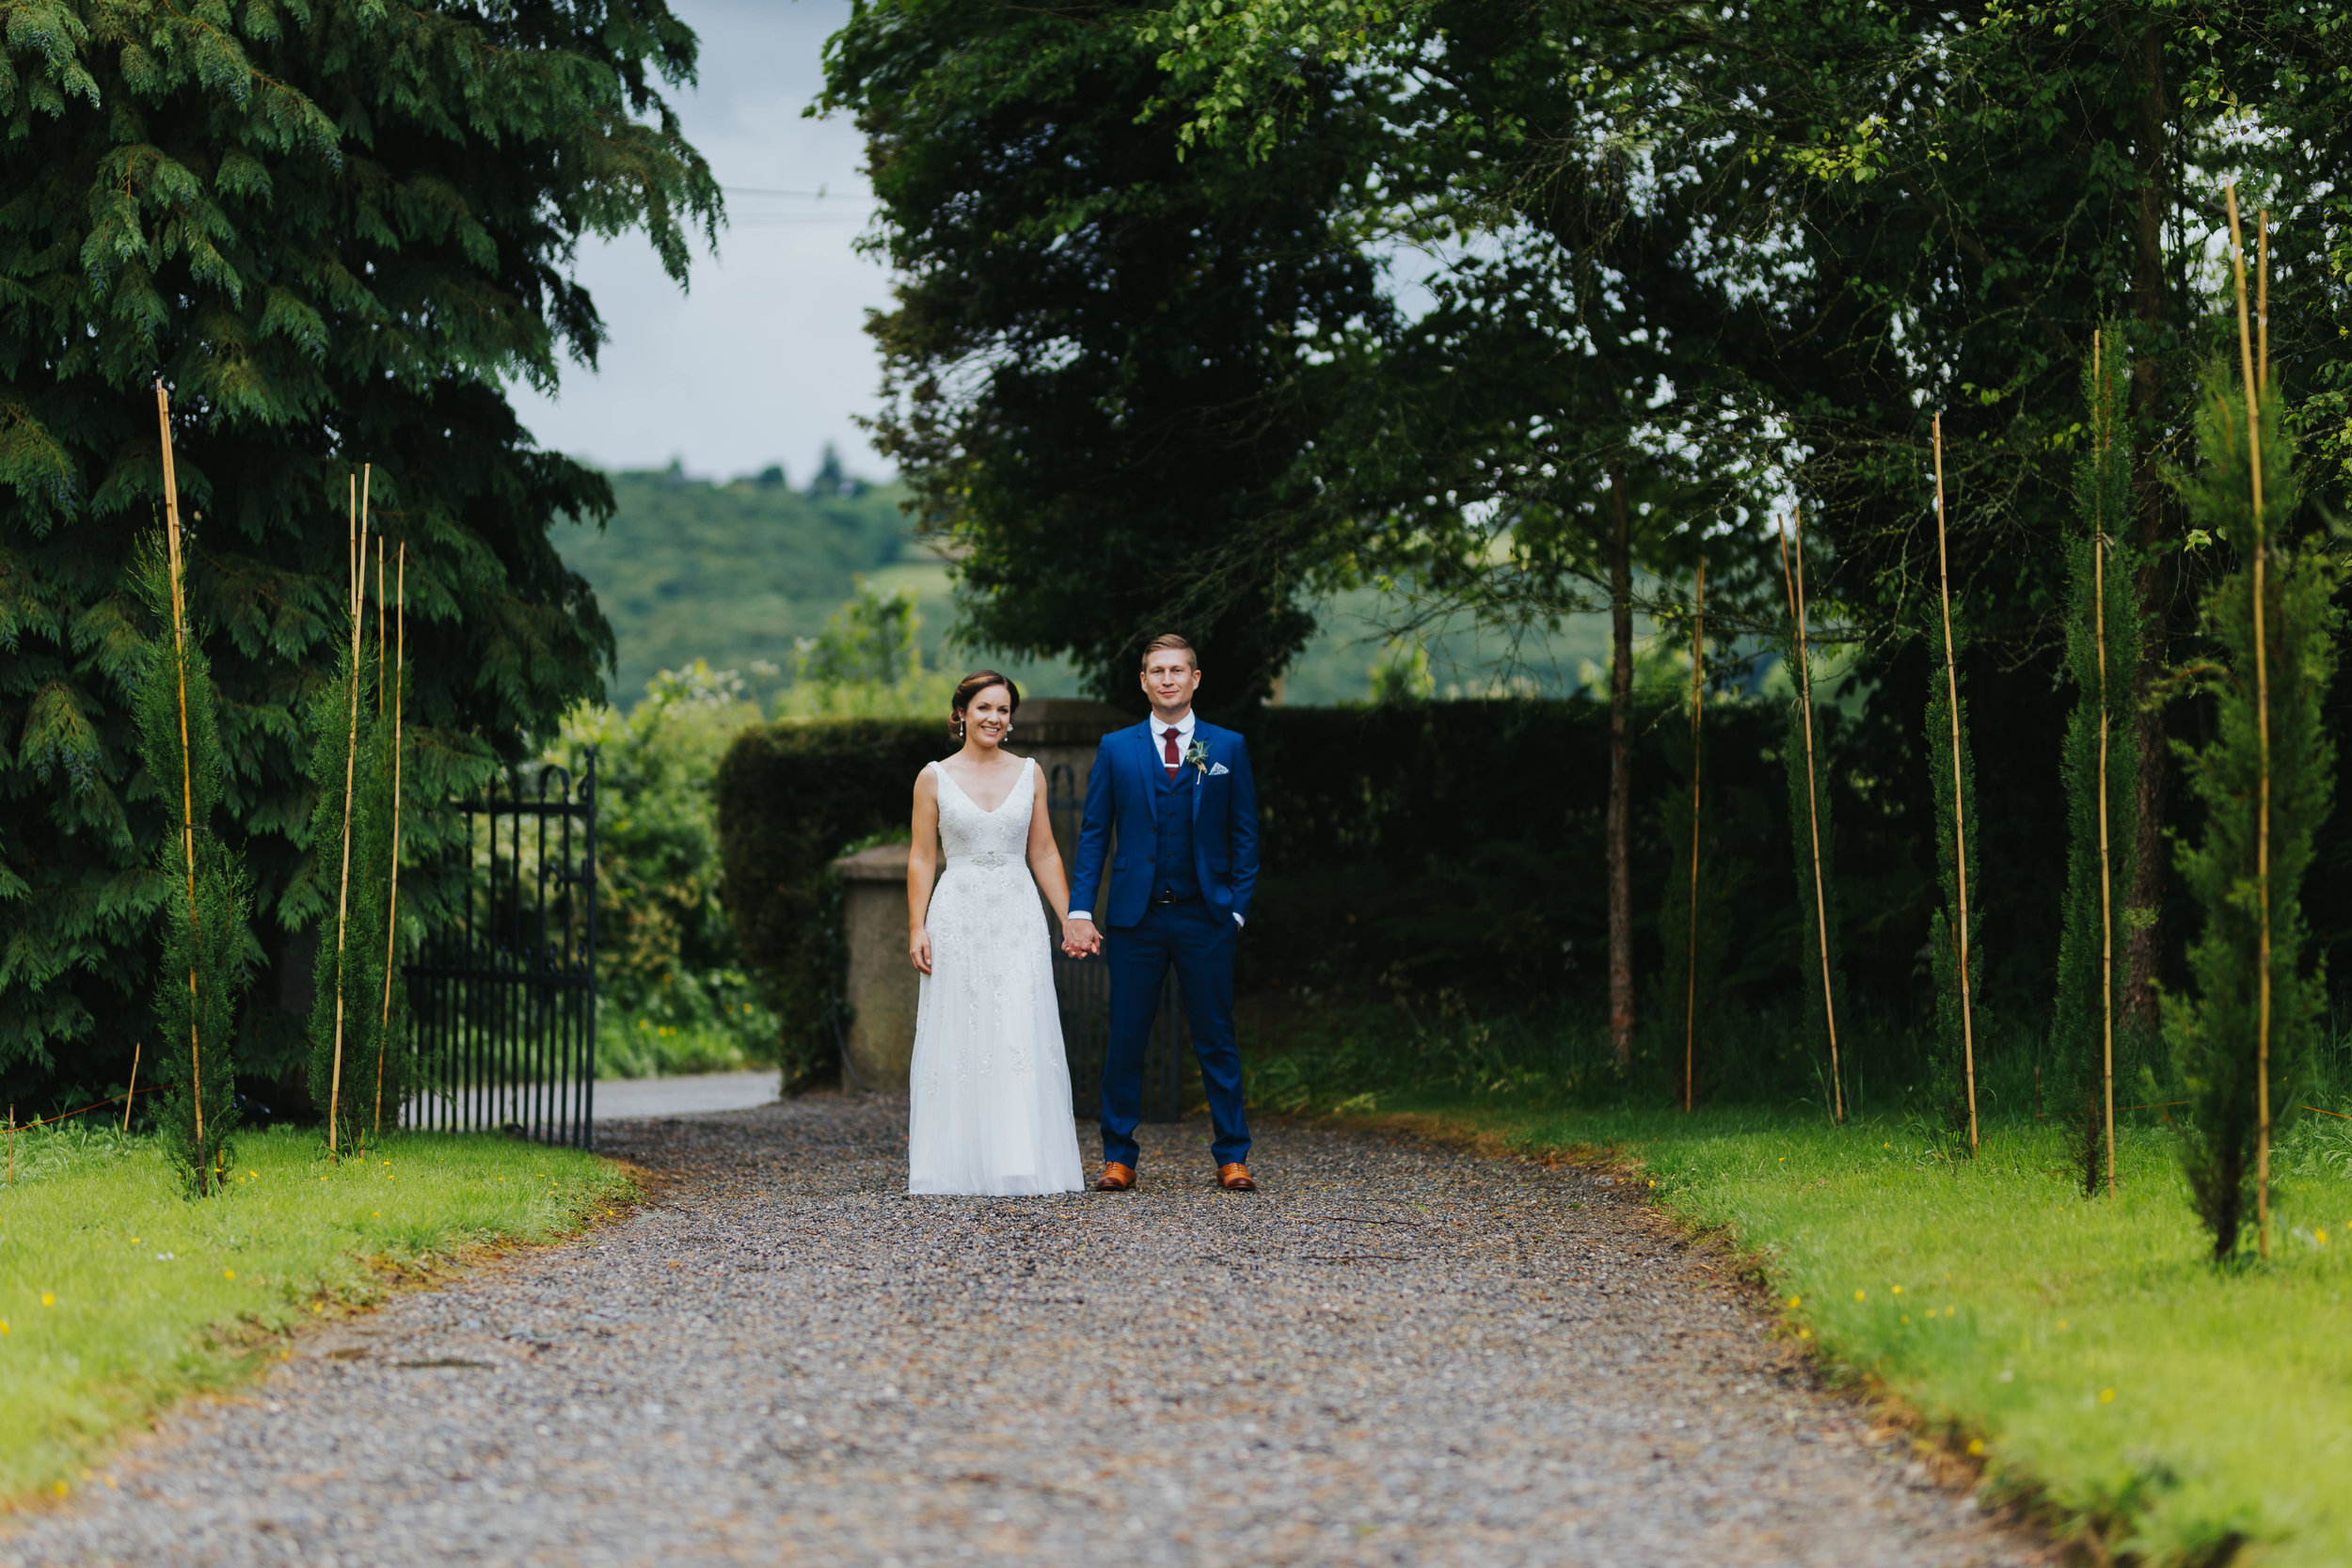 e+t_ballilogue_kilkenny_wedding_photographer_liviafigueiredo_153.JPG